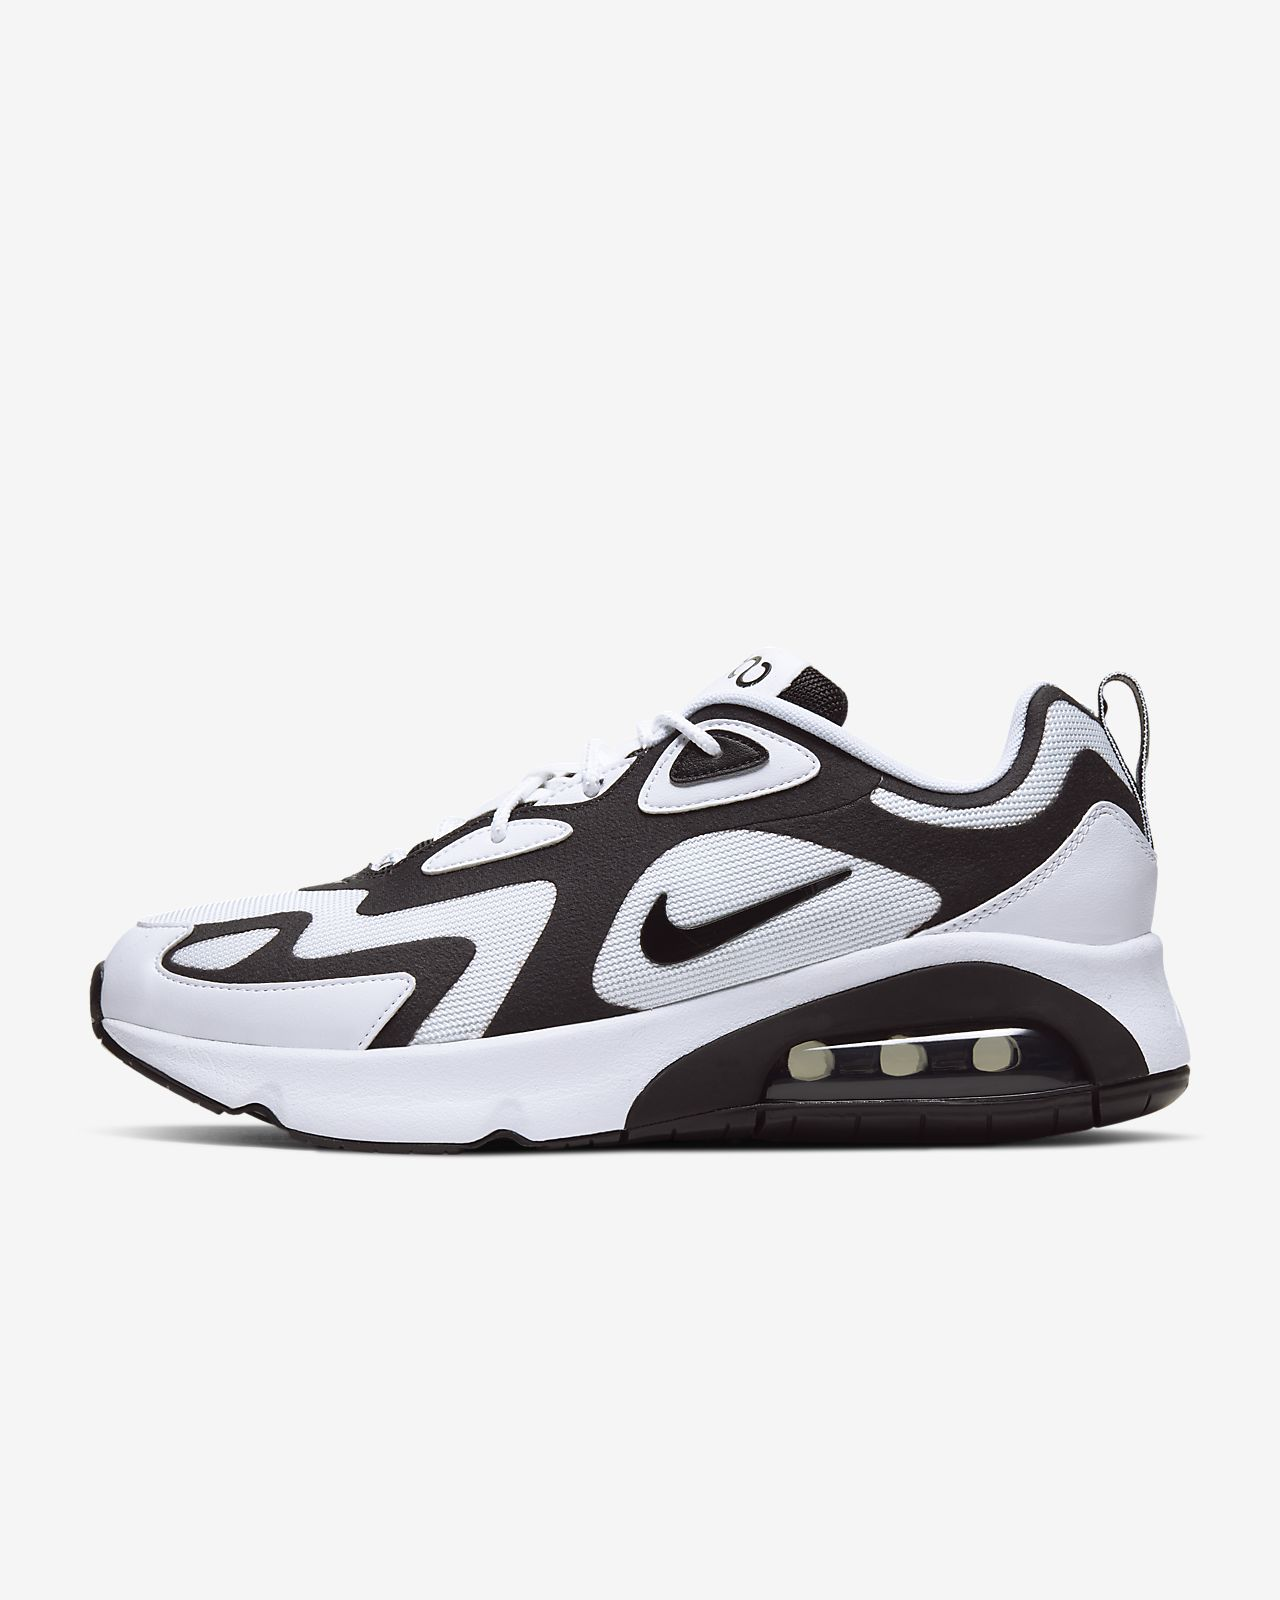 Best Are Air Max Good For Running of 2020 Top Rated & Reviewed